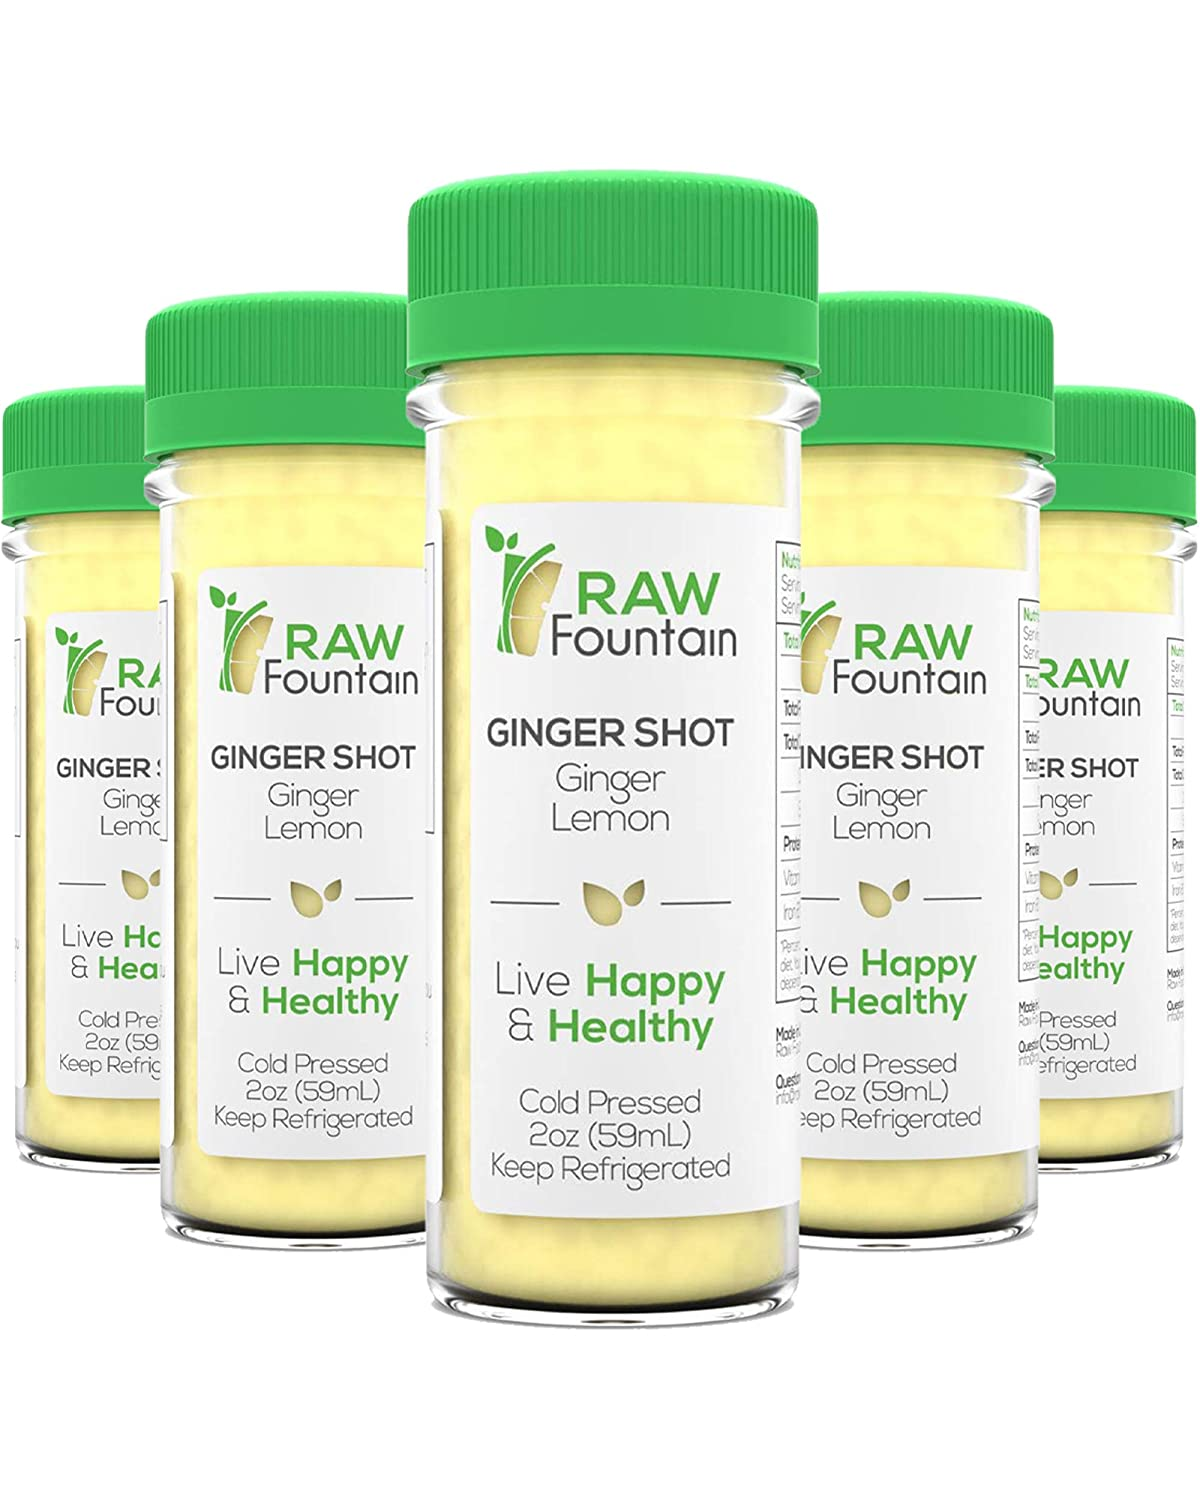 20 Ginger Shots with Lemon 2fl Oz, Vitamin C, Raw and Cold Pressed, Boosts Immunity, Non GMO, All Natural, No Artificial Flavors or Preservatives